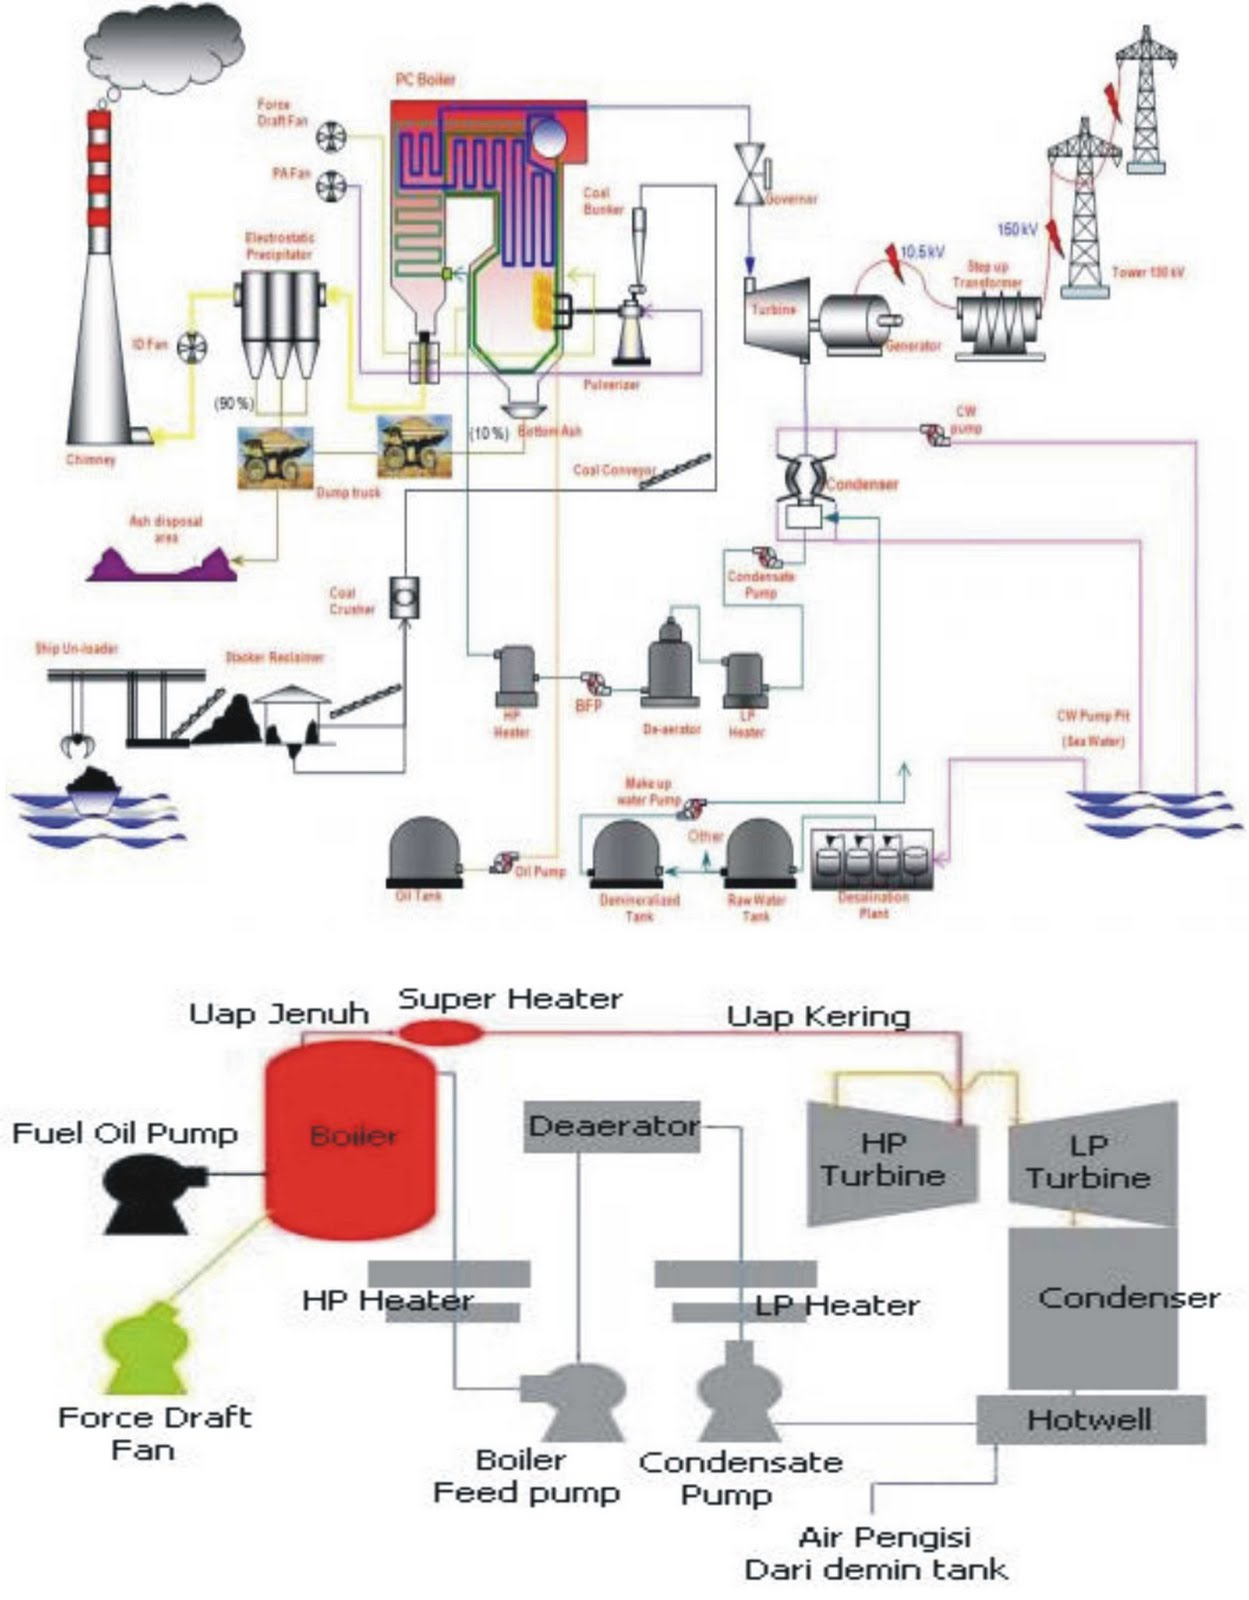 power plant steam cycle diagram [ 1249 x 1600 Pixel ]